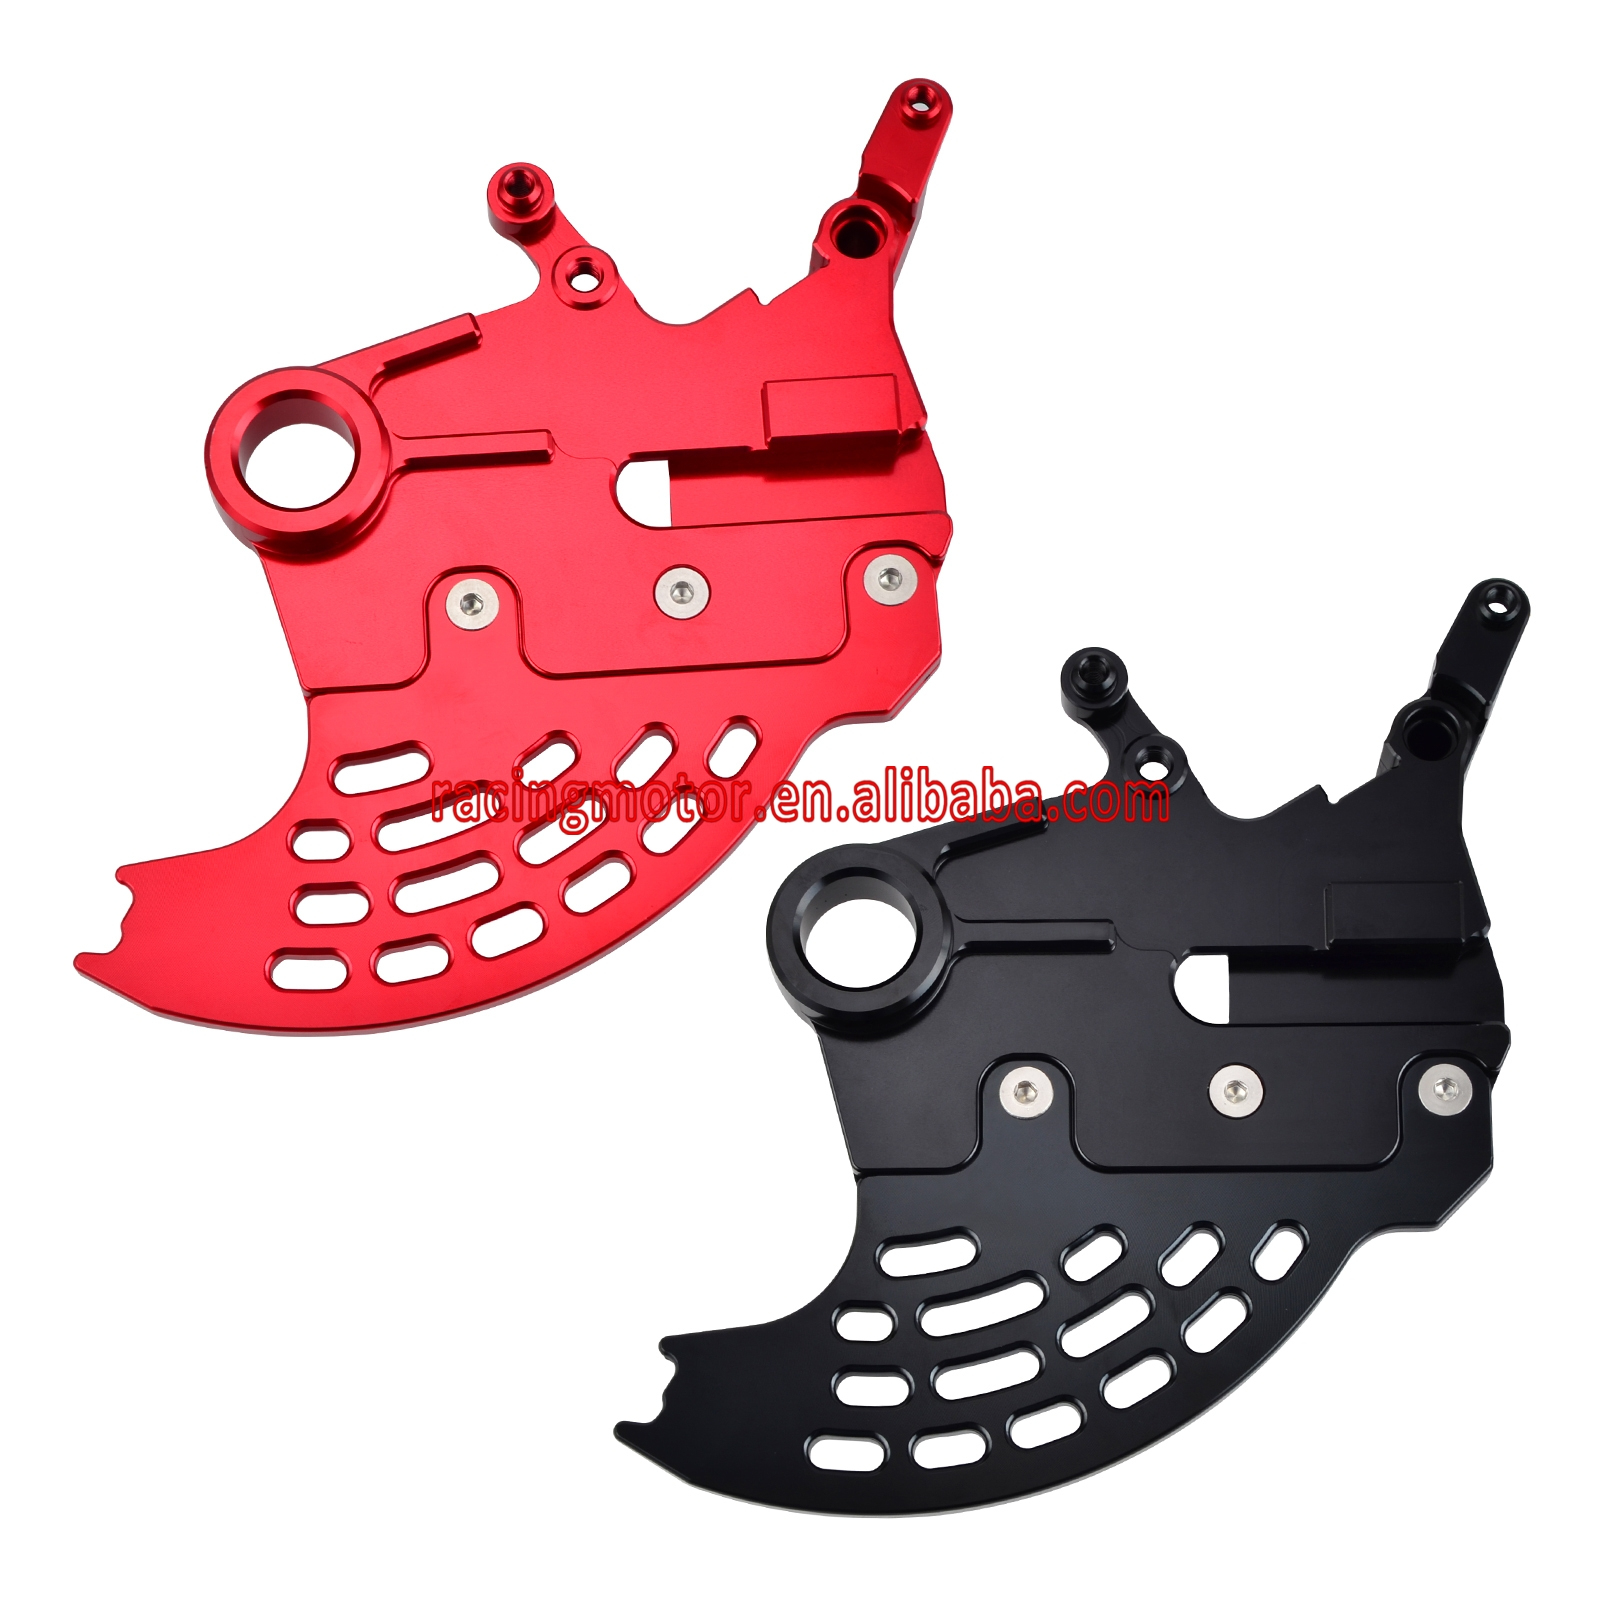 CNC Rear Brake Rotor Disc Guard Protector Cover for Honda CR125 CR250 CR 125 250 2002-2007 CRF250R 2004-2017 CRF250X 2004-2018 270mm front brake disc rotor for cr 125 250 500 crf 250r 250x 450x 450r 230f motocross supermoto enduro dirt bike off road